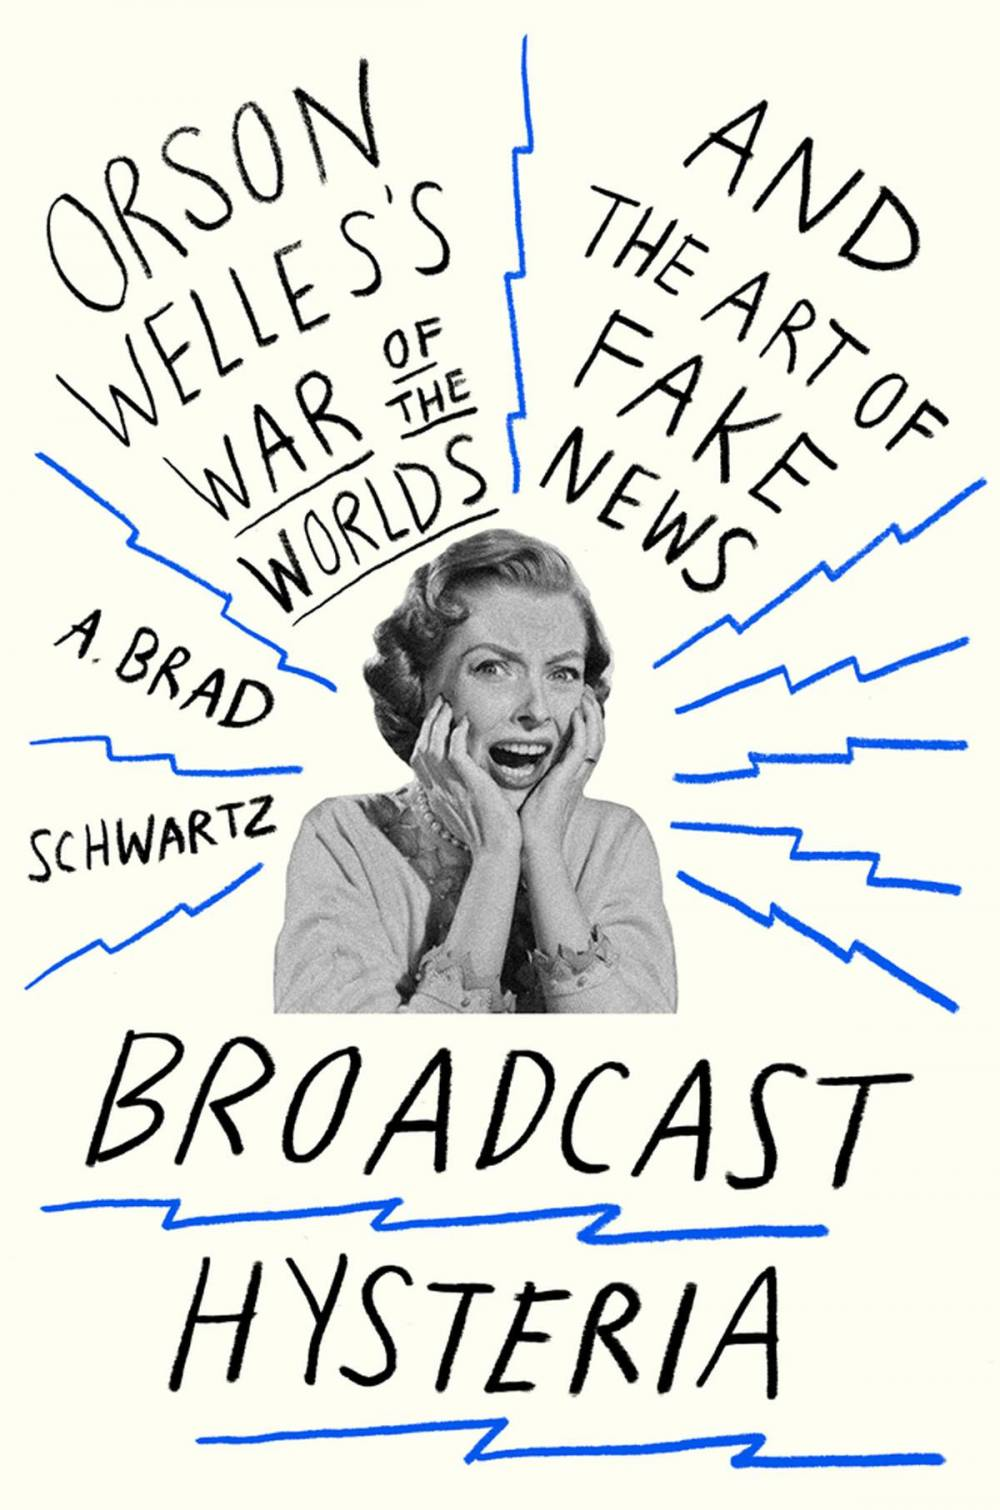 """Book cover for A. Brad Schwartz's book, """"Broadcast Hysteria: Orson Welles's ' War of the Worlds' and the Art of Fake News"""""""